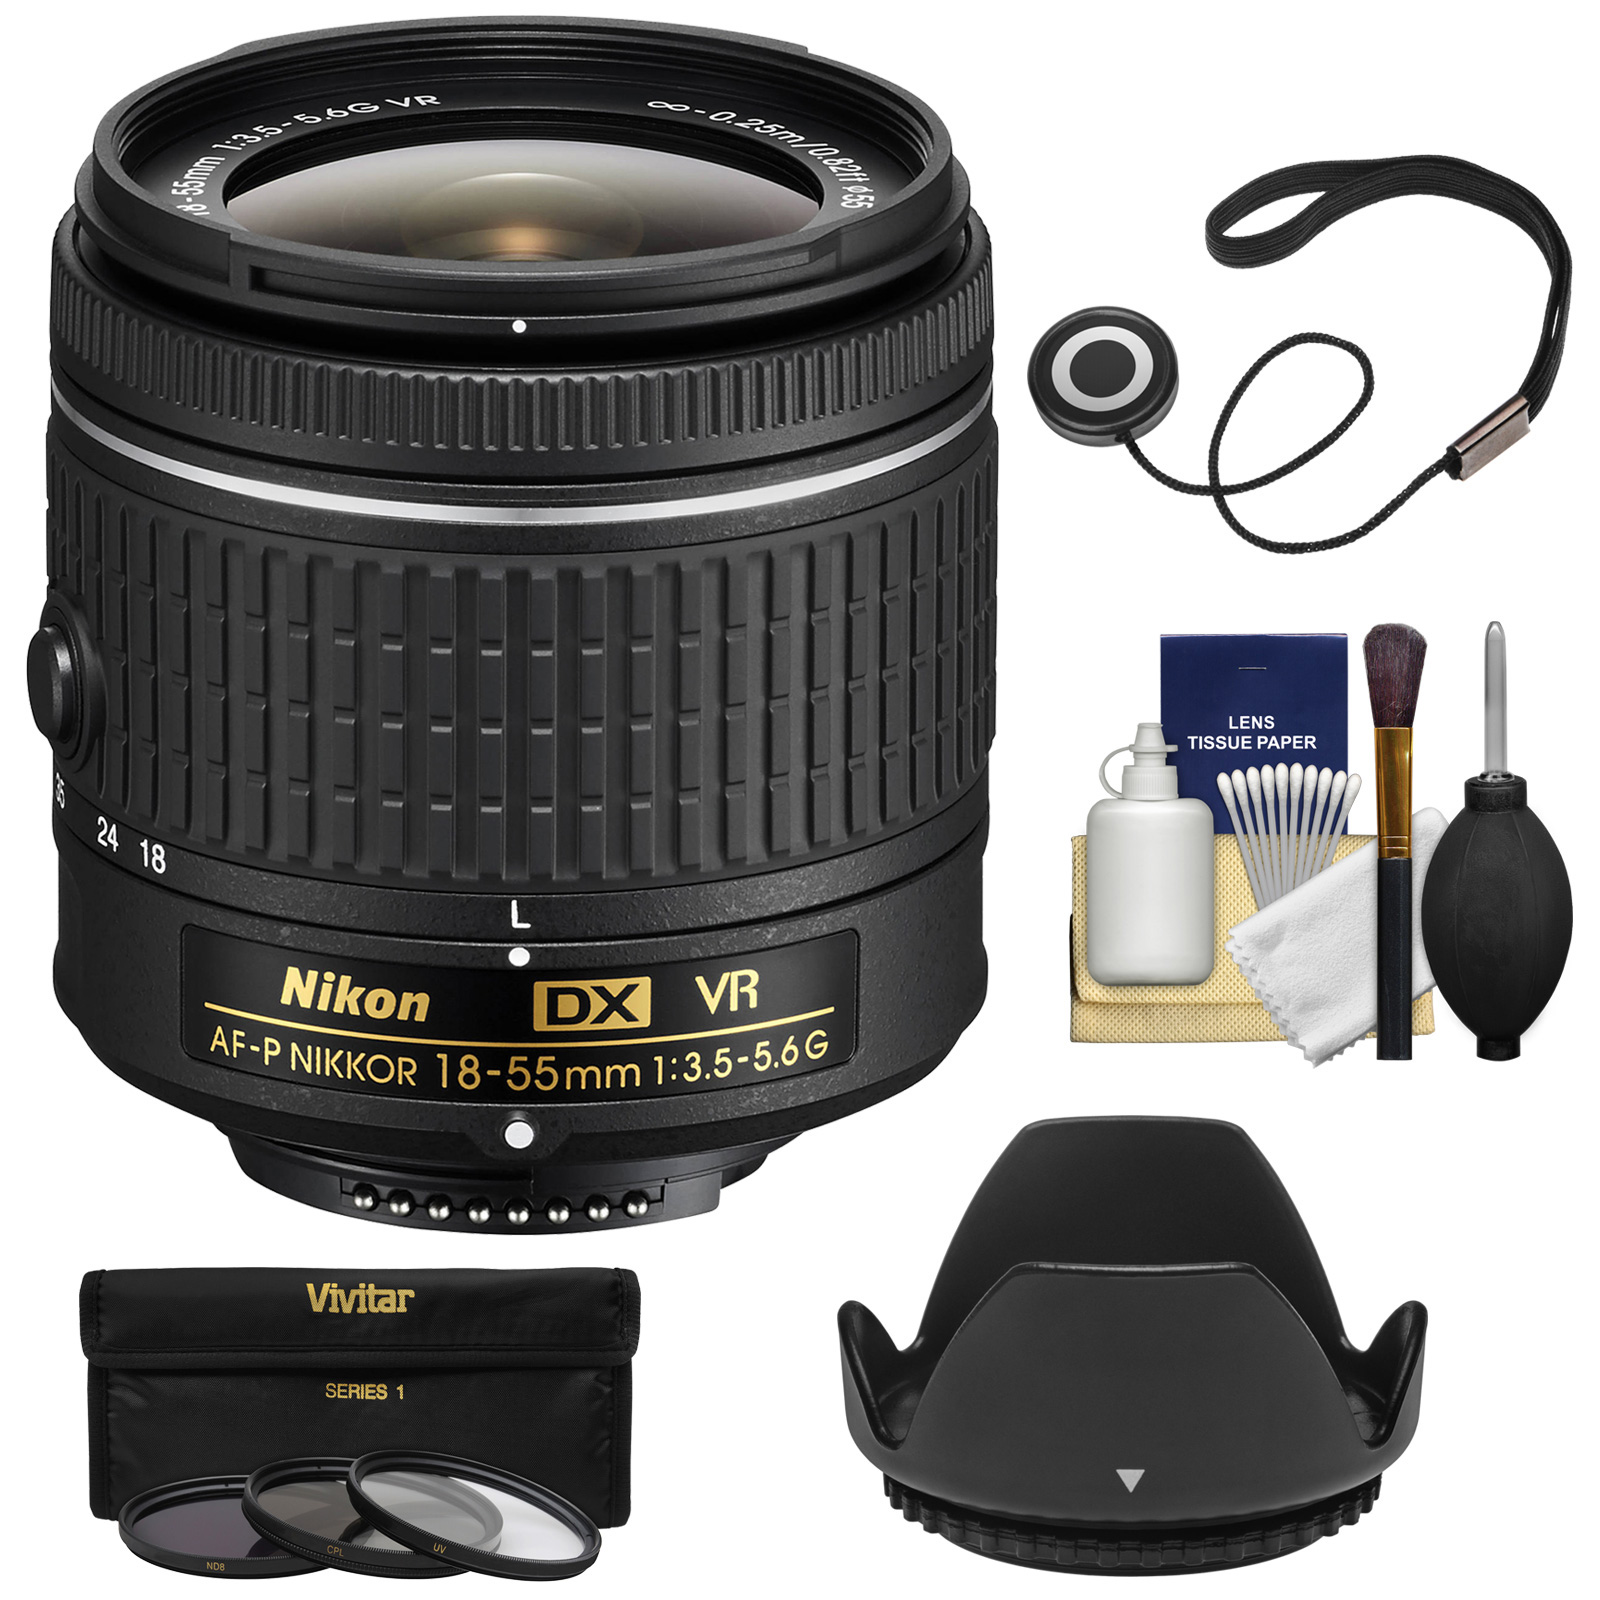 Nikon 18-55mm f/3.5-5.6G VR AF-P DX Zoom-Nikkor Lens - Factory Refurbished with 3 UV/CPL/ND8 Filters + Hood + Kit